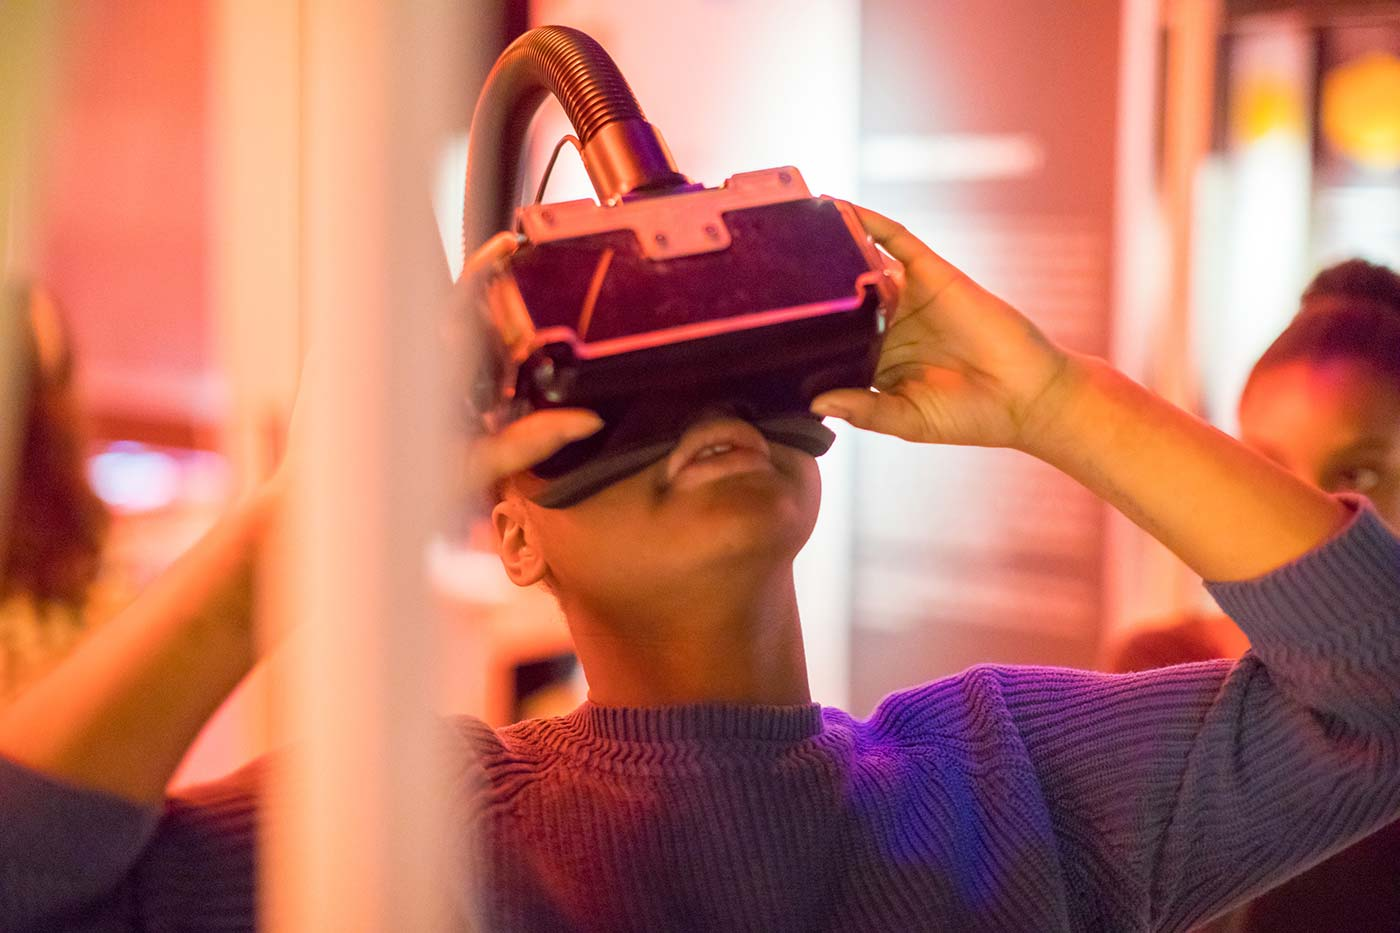 Fusion Prize - Culture Mile and Foundation for Future London have partnered on the FUSION PRIZE, a new competition - with a £50,000 prize fund - to find innovative ways to upskill future generations, empowering them to meet the demands of today's employers.